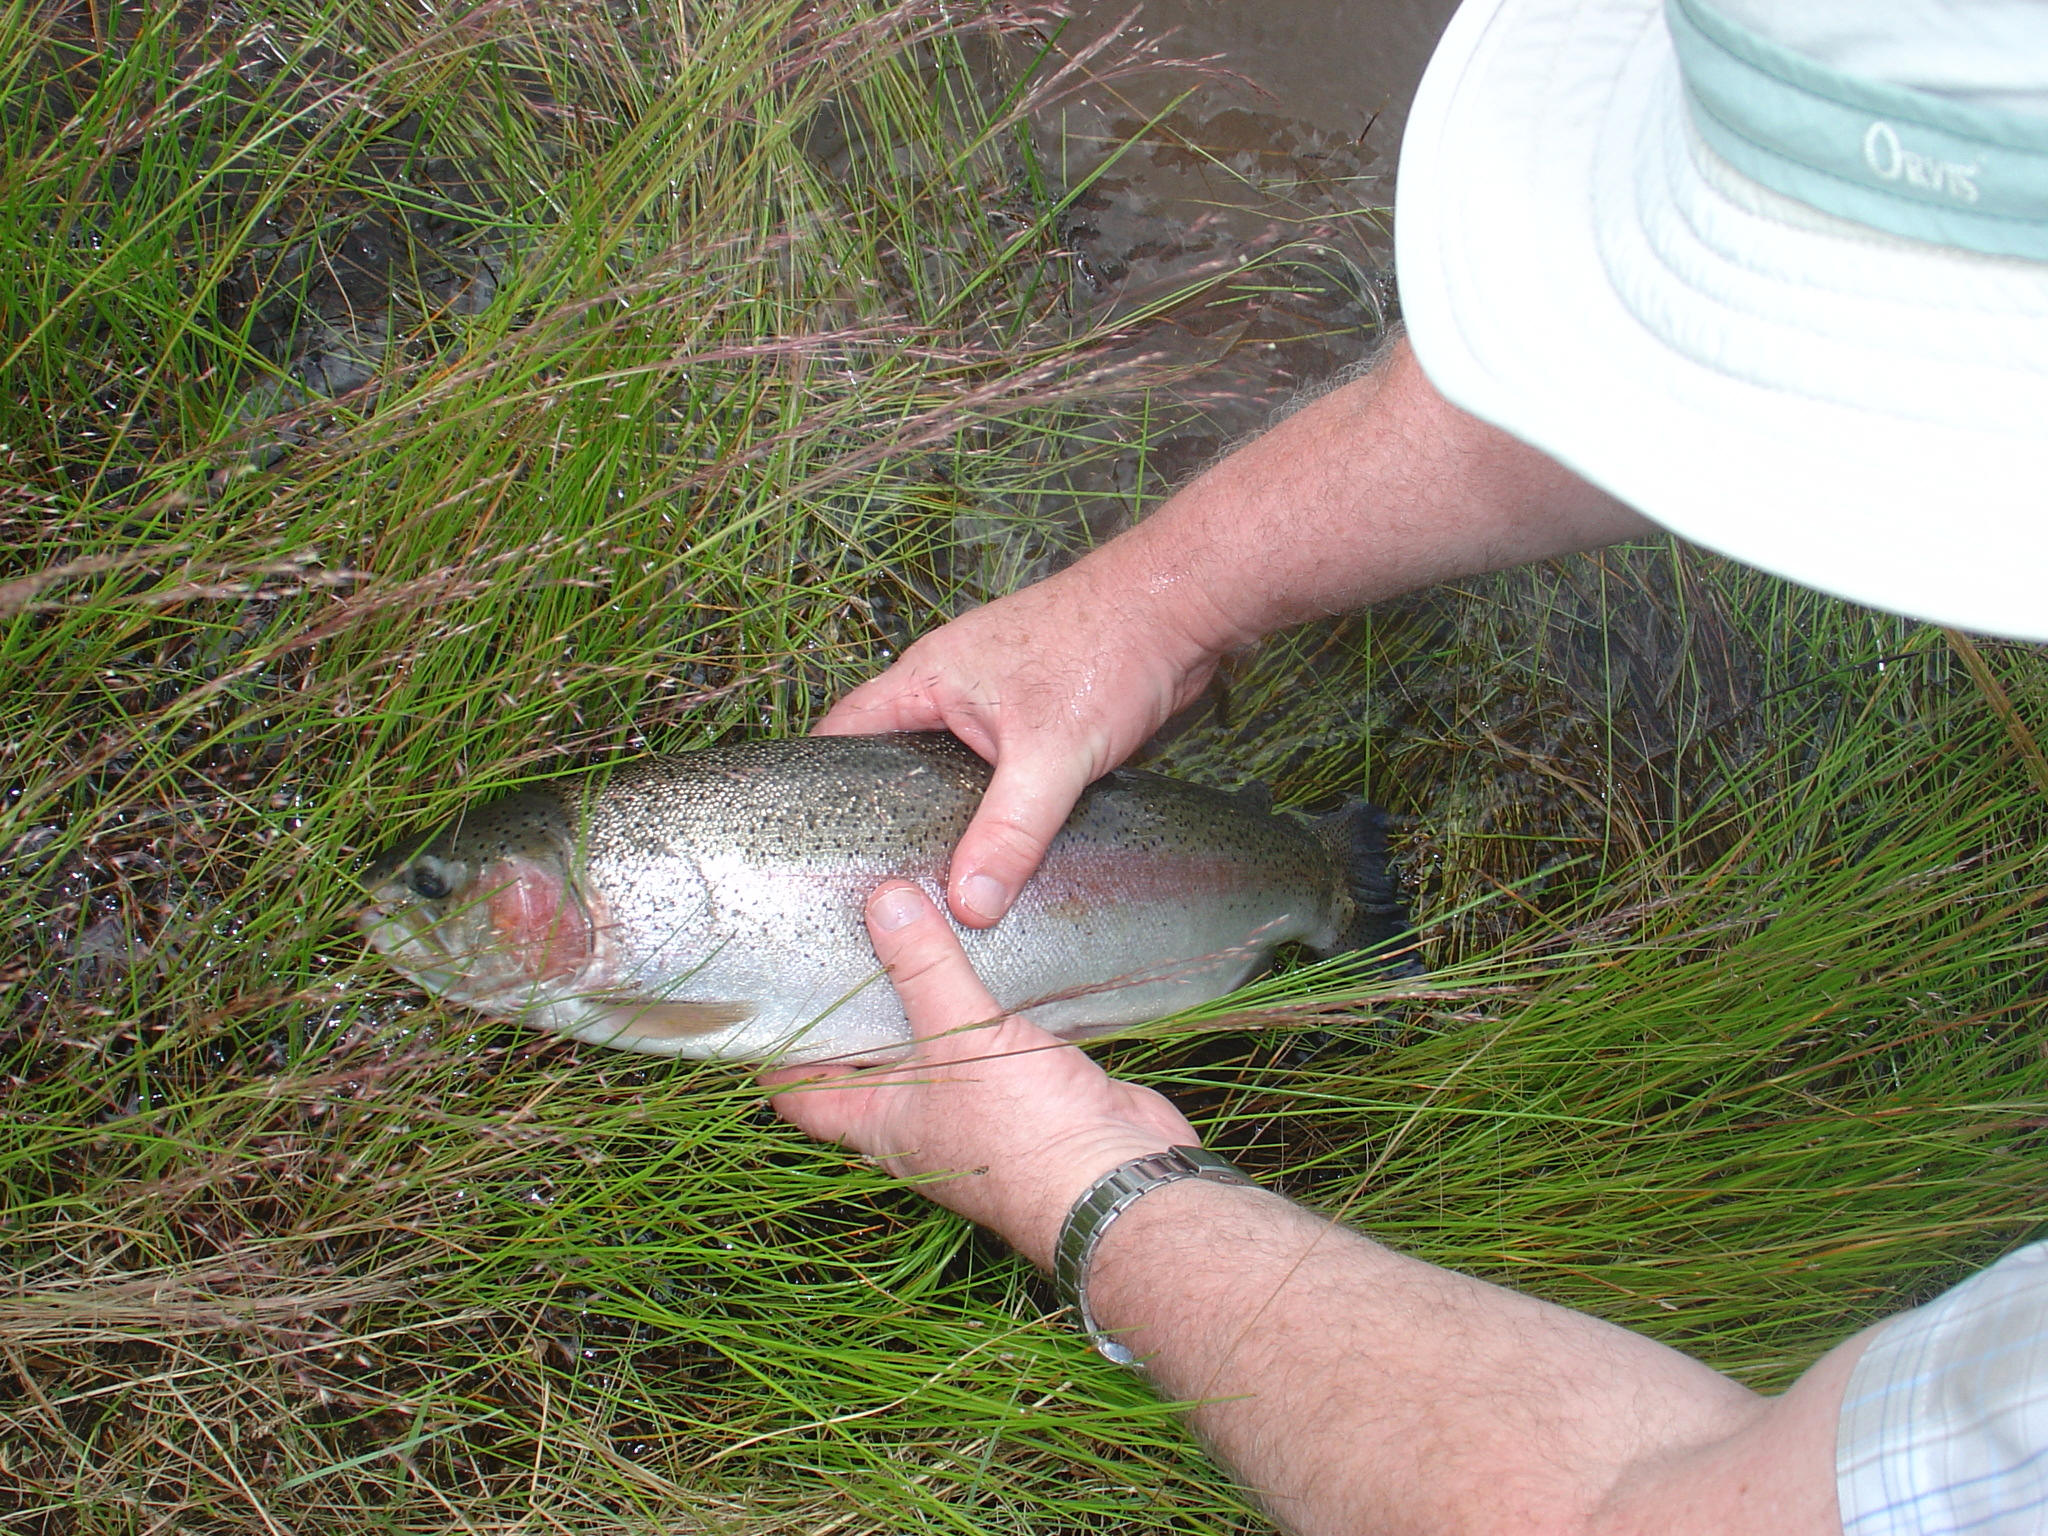 South african freshwater fish information and interesting for Freshwater fish facts